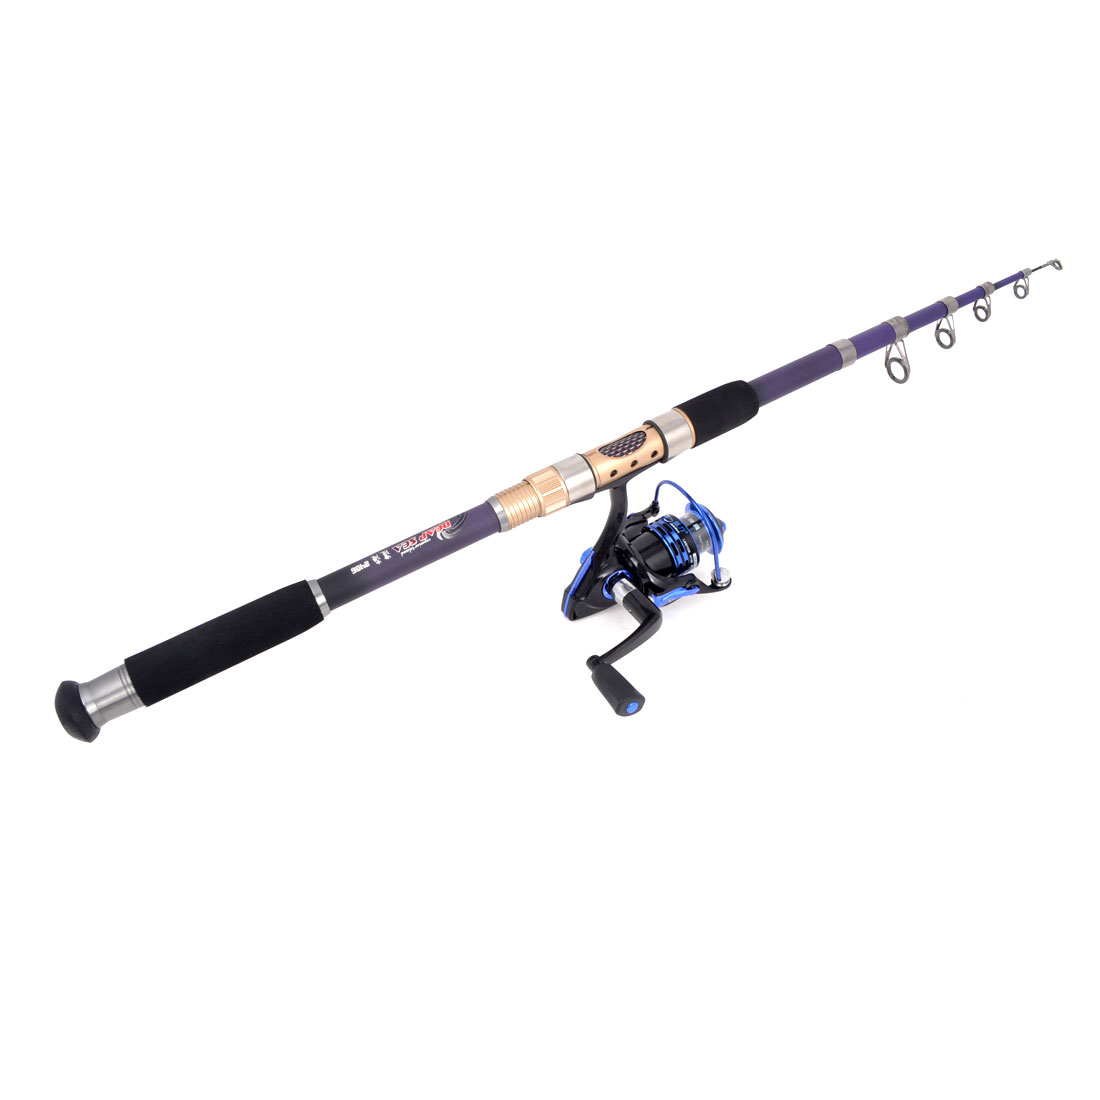 6.6Ft Long Black Purlple Nonslip Handle 6 Sections Fish Rod w Fish Spinning Reel